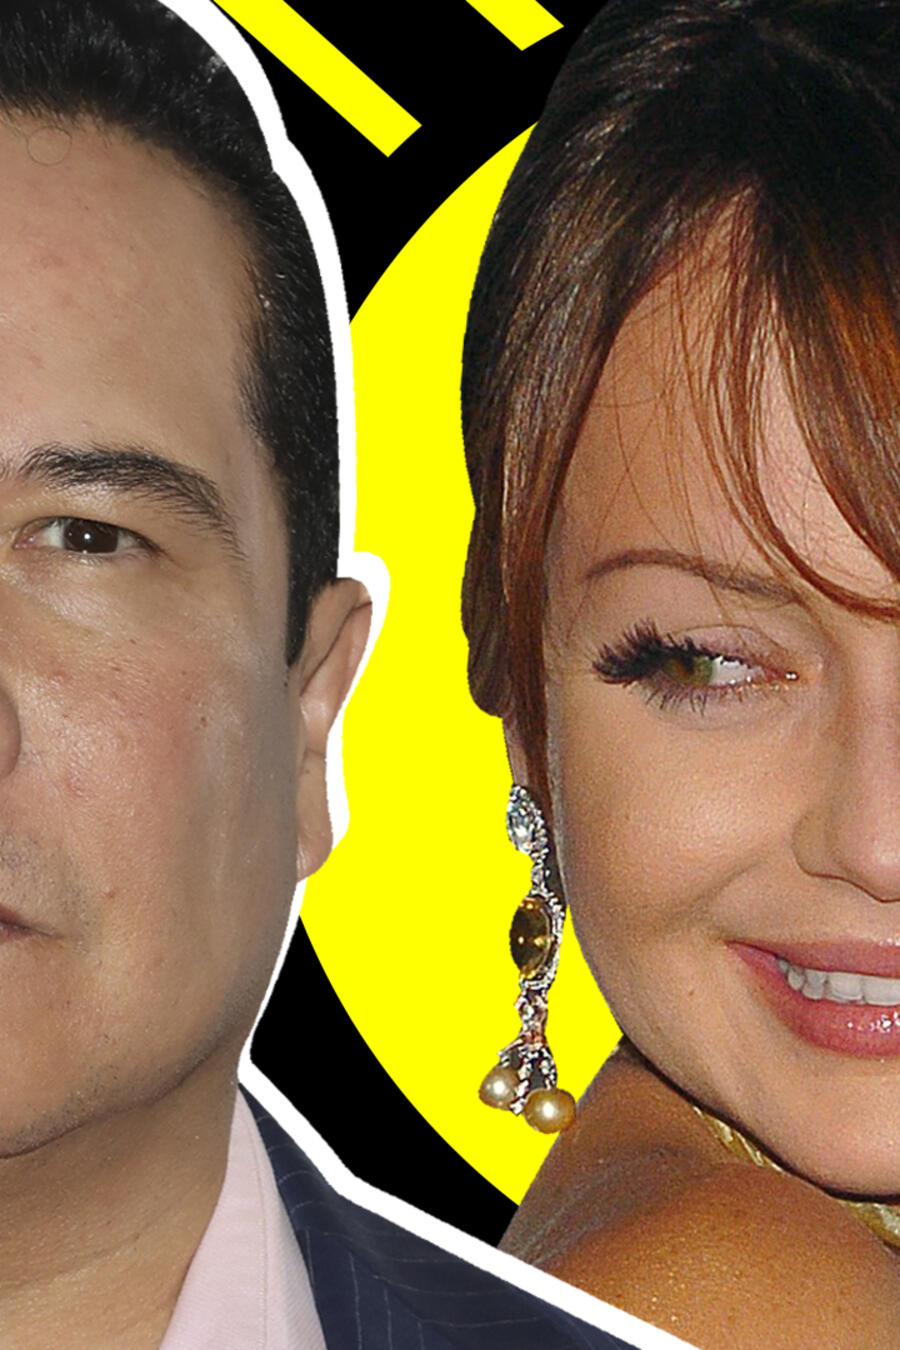 Gustavo Adolfo pide disculpas a Gaby Spanic